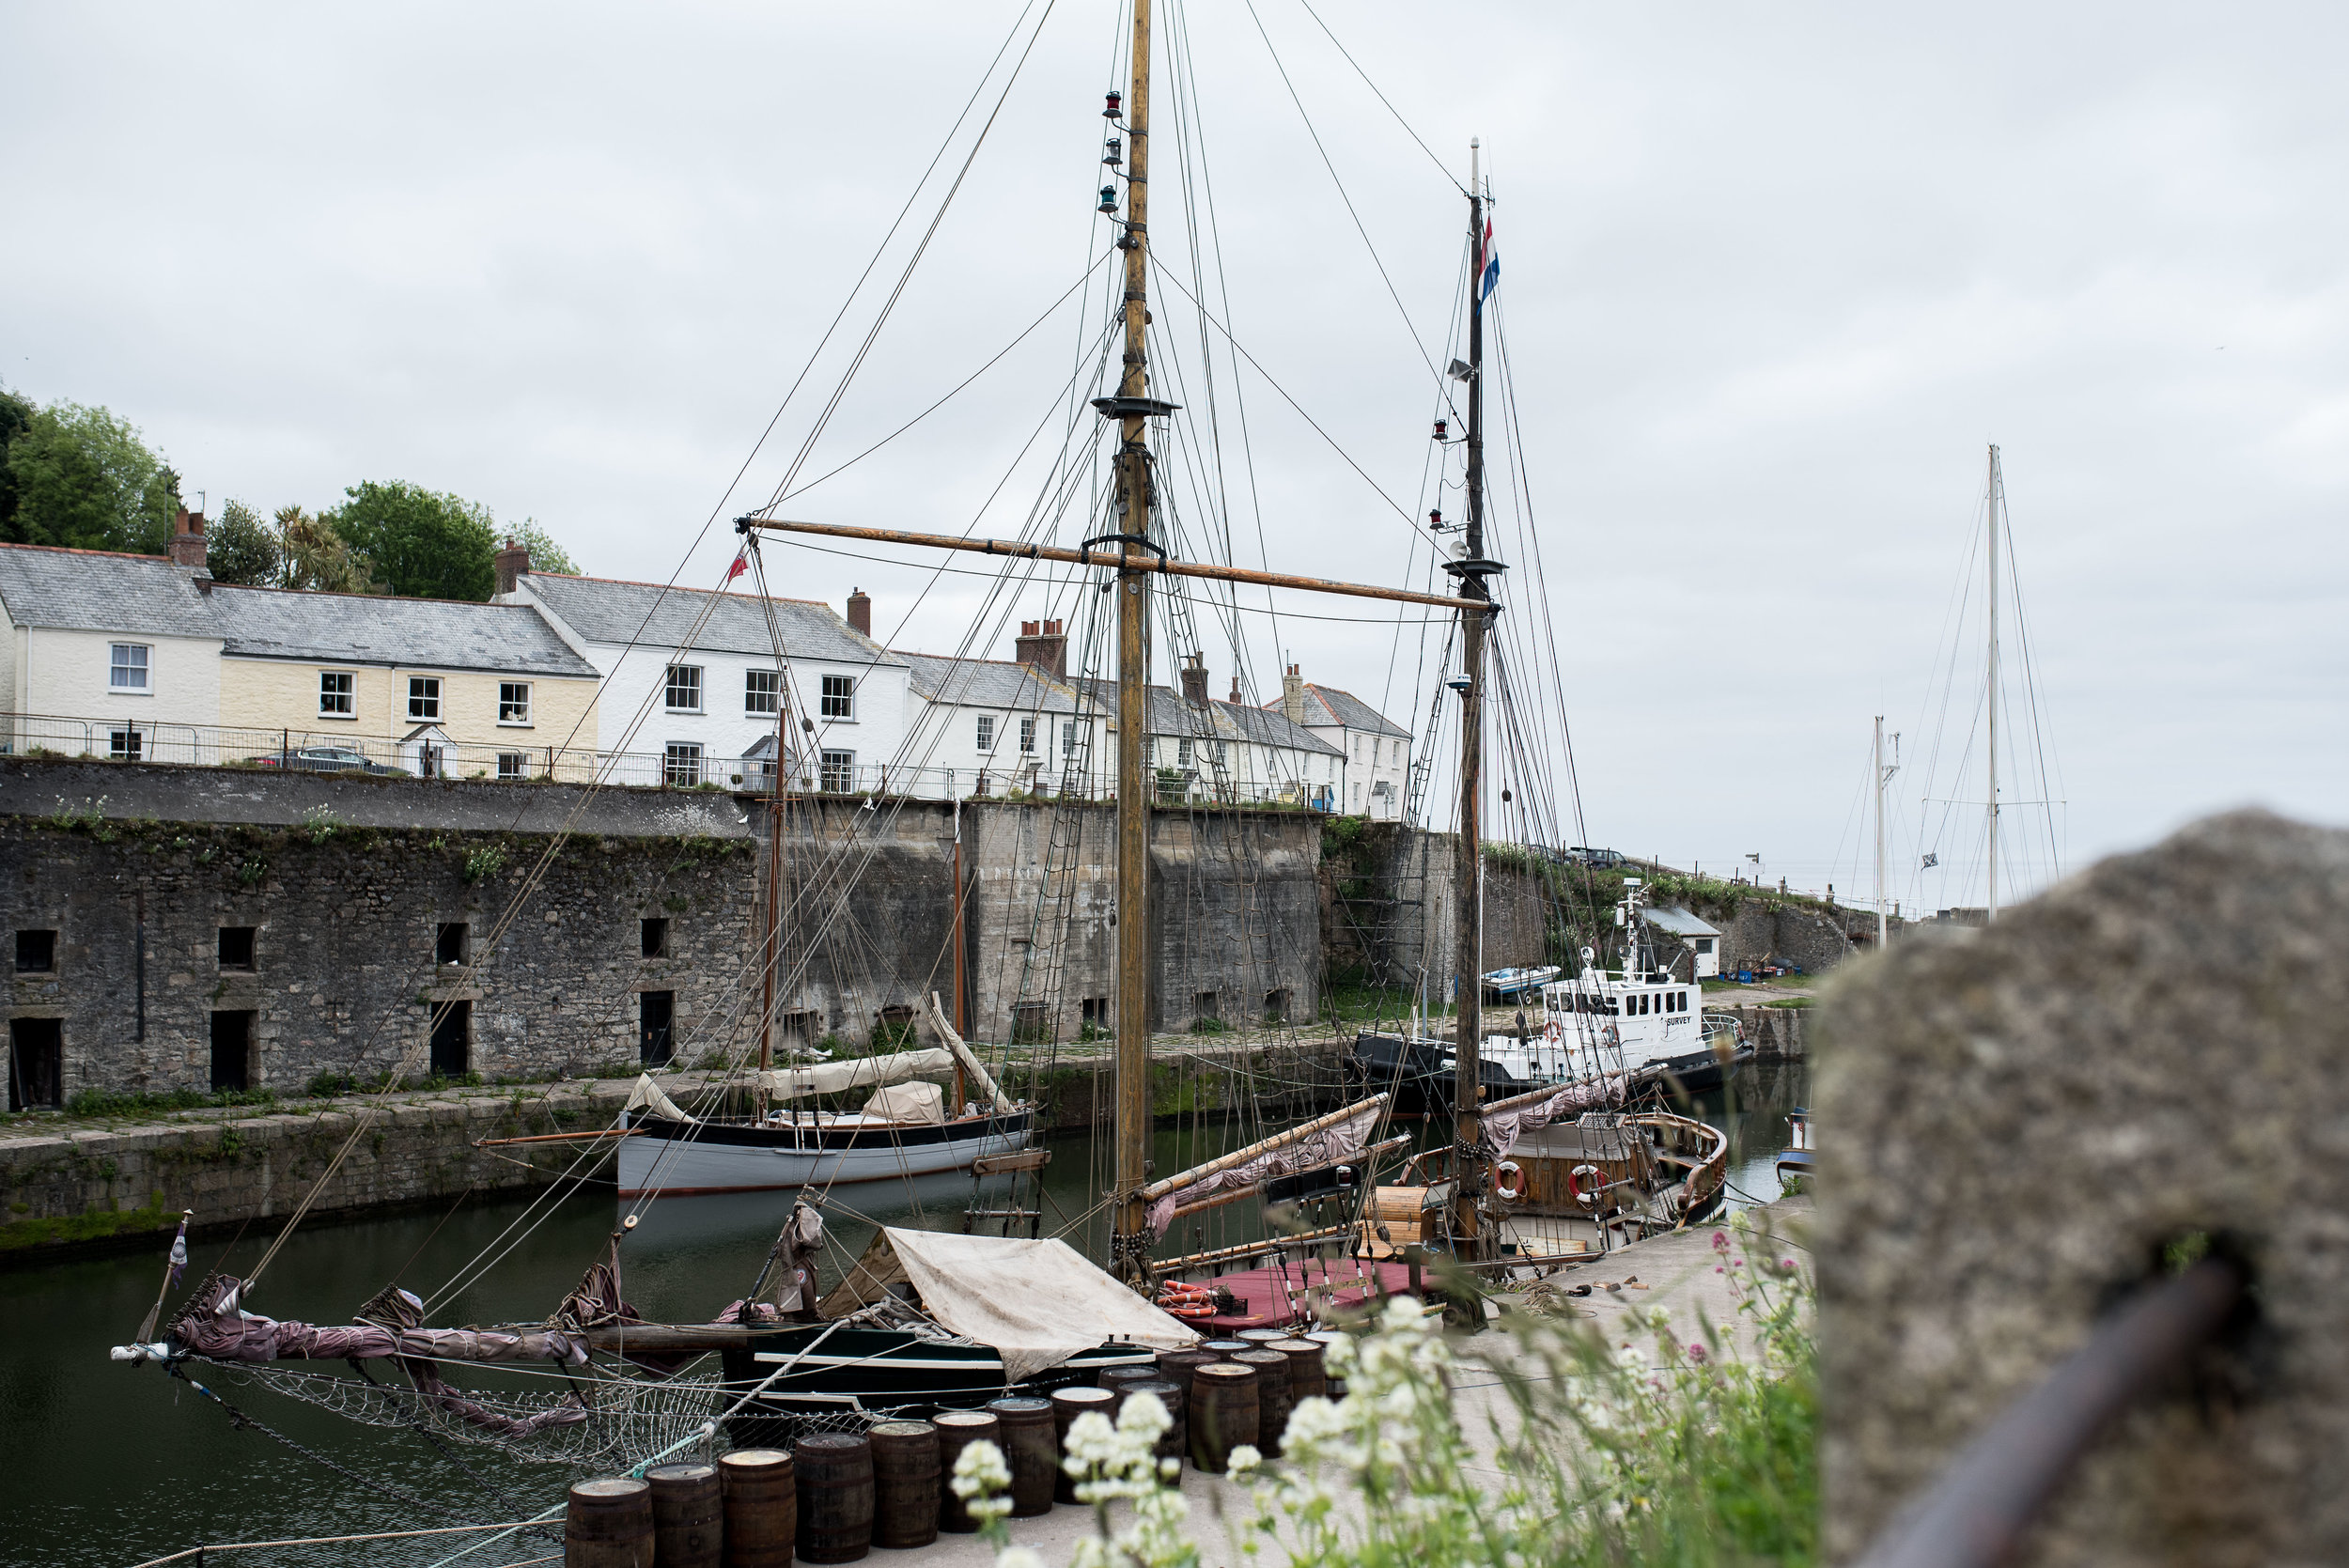 Our first stop on Day 5 was to Charlestown. I think No. 10 is supposed to represent it on the map, but it's actually one bay to the East, before you get to Fowey. Oops.  This area has also been used as a frequent filming location for  Poldark .